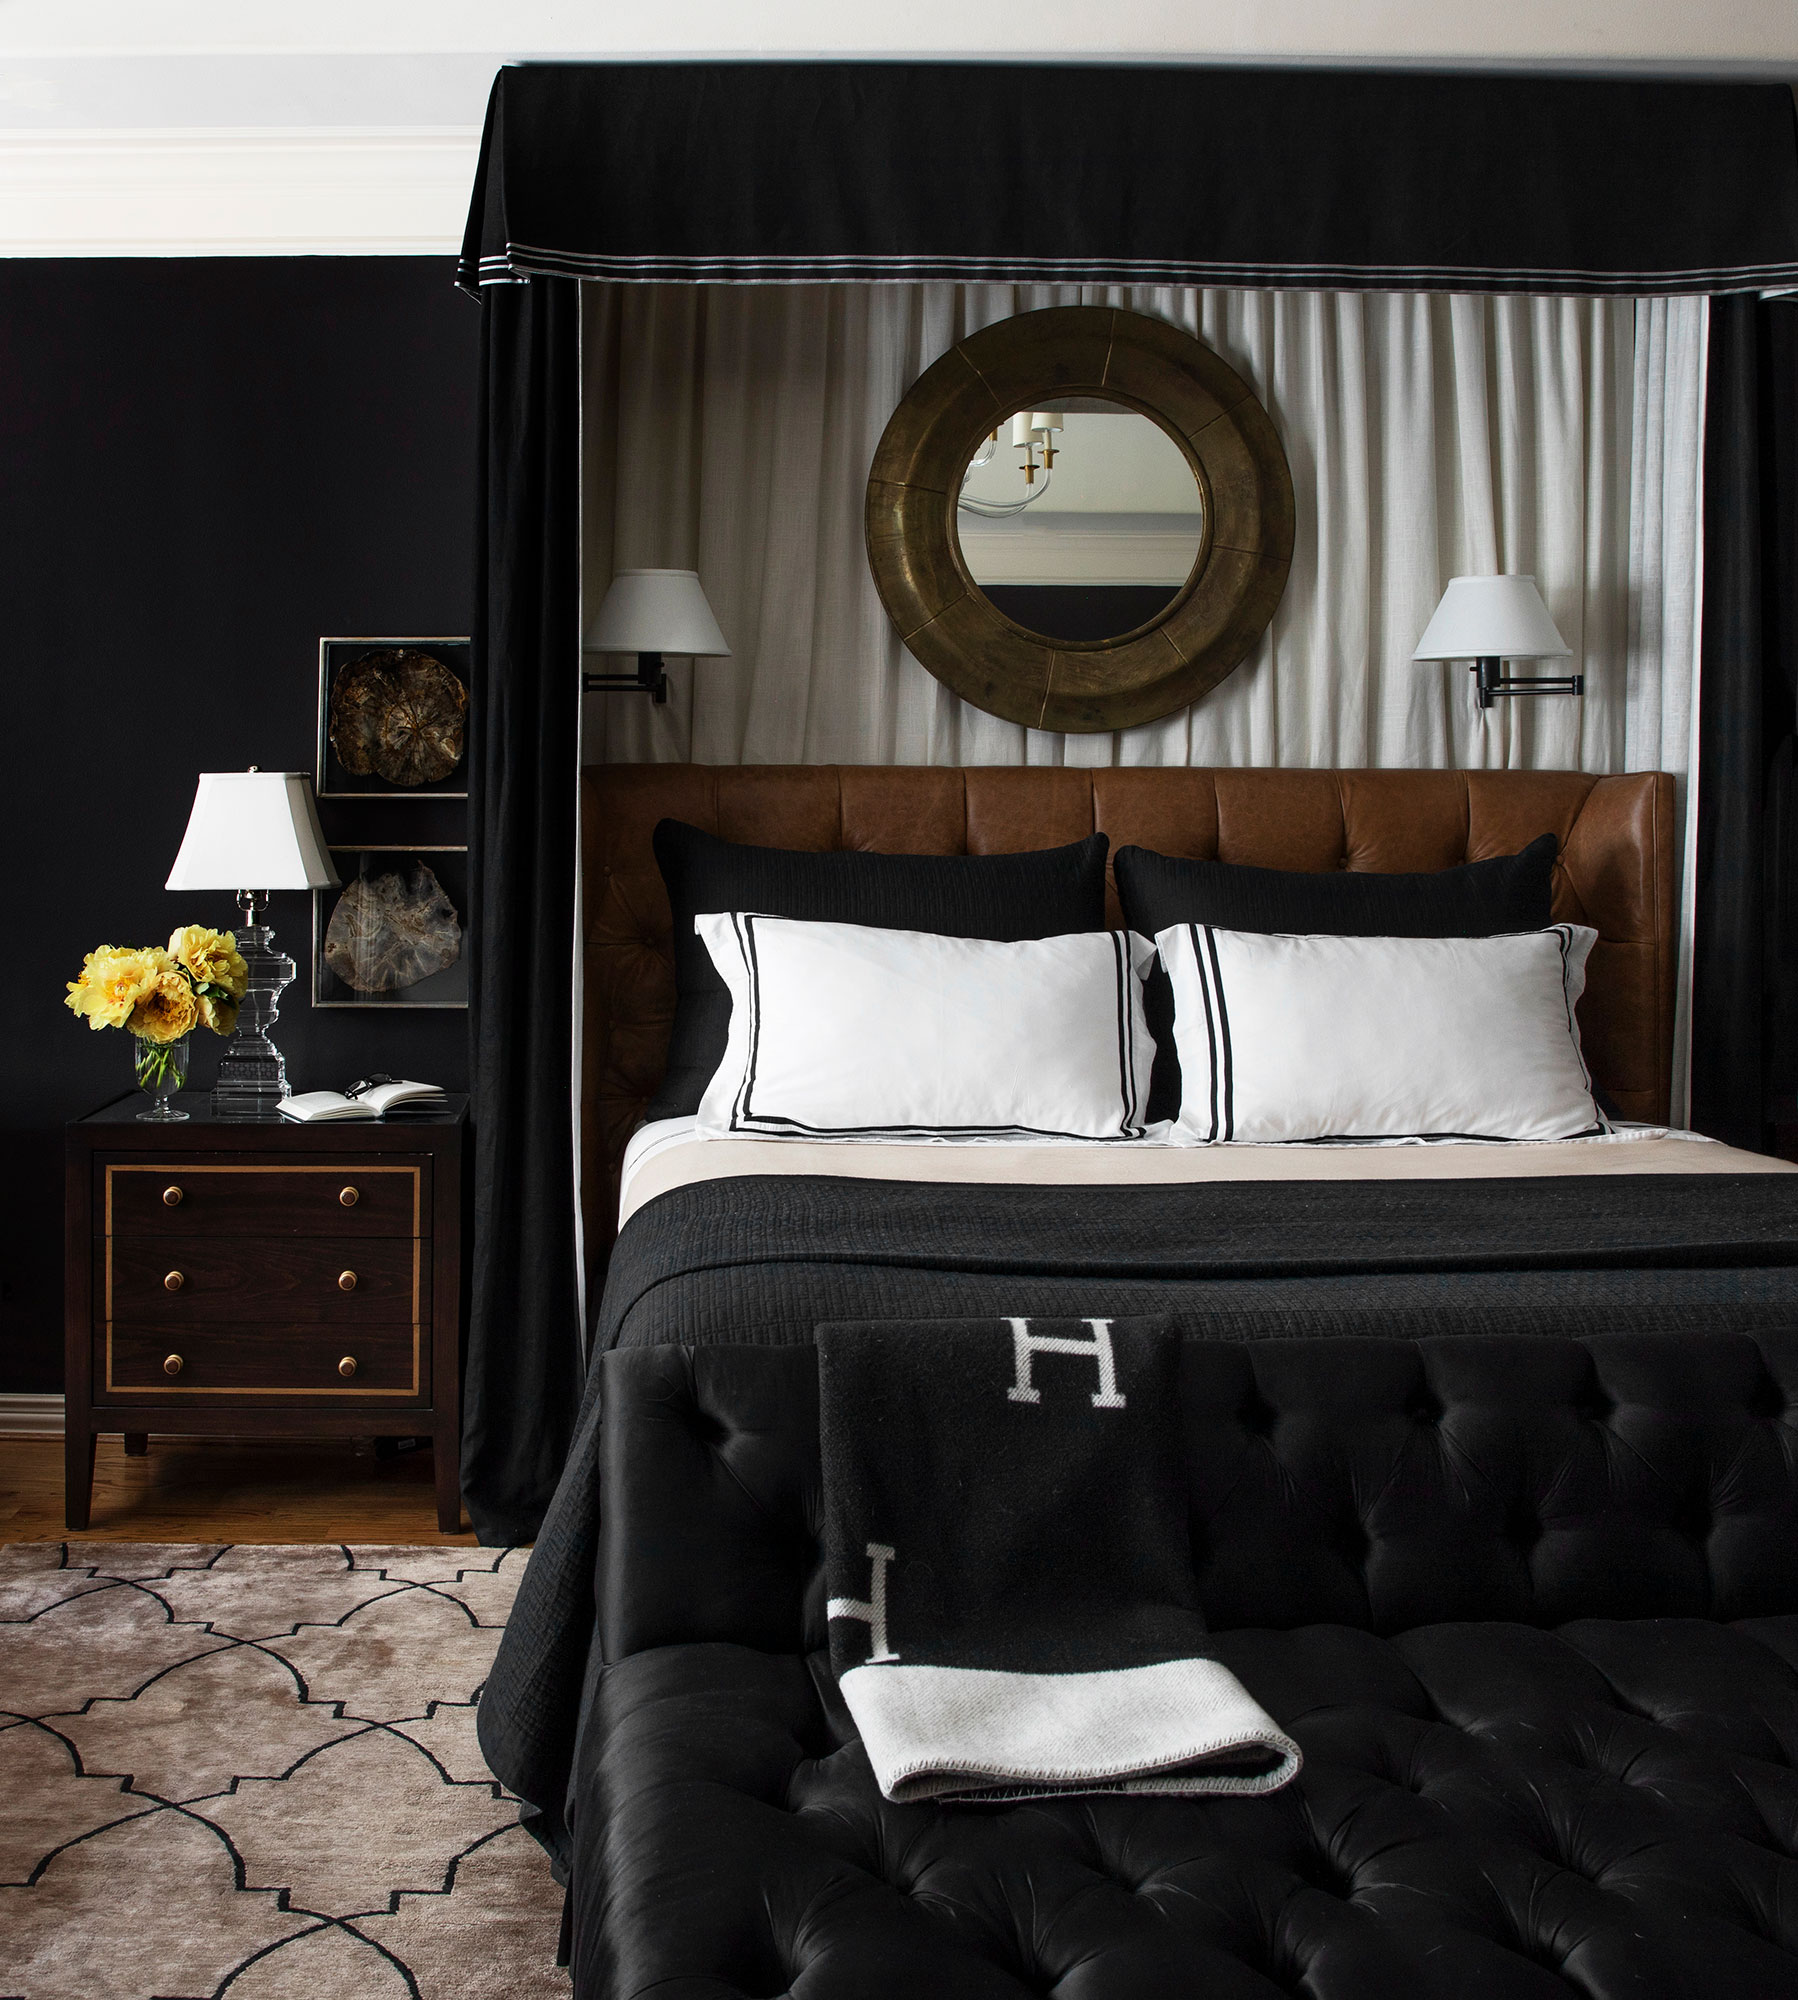 Black bedroom Interiors Photography - Julie Soefer Photography